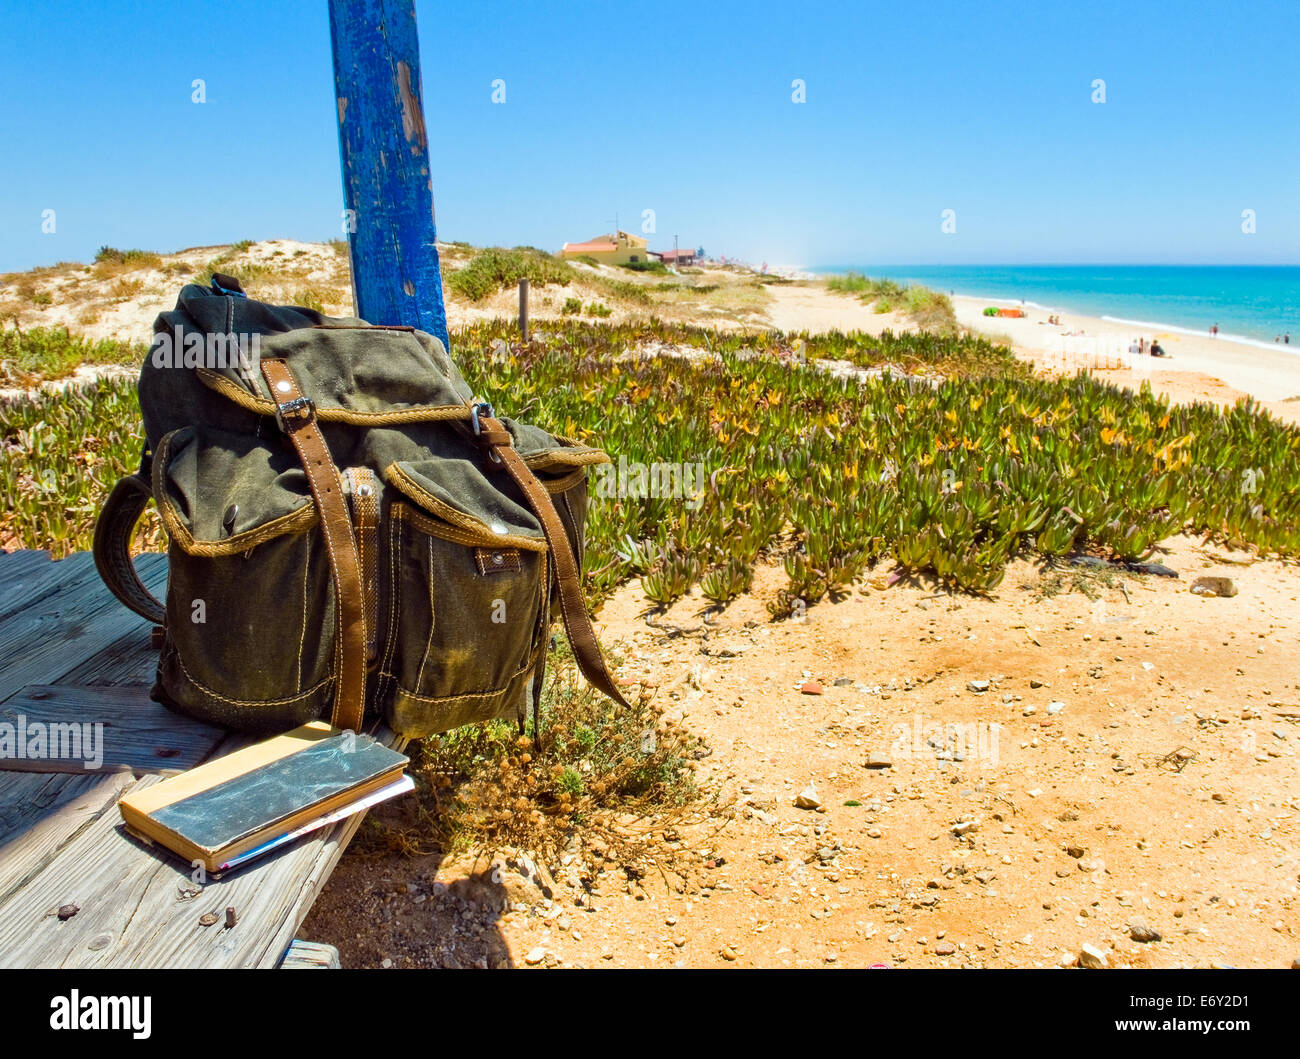 Backpack and book on the porch of a wooden hut next to the shore of a European beach. Backpacking traveller taking - Stock Image